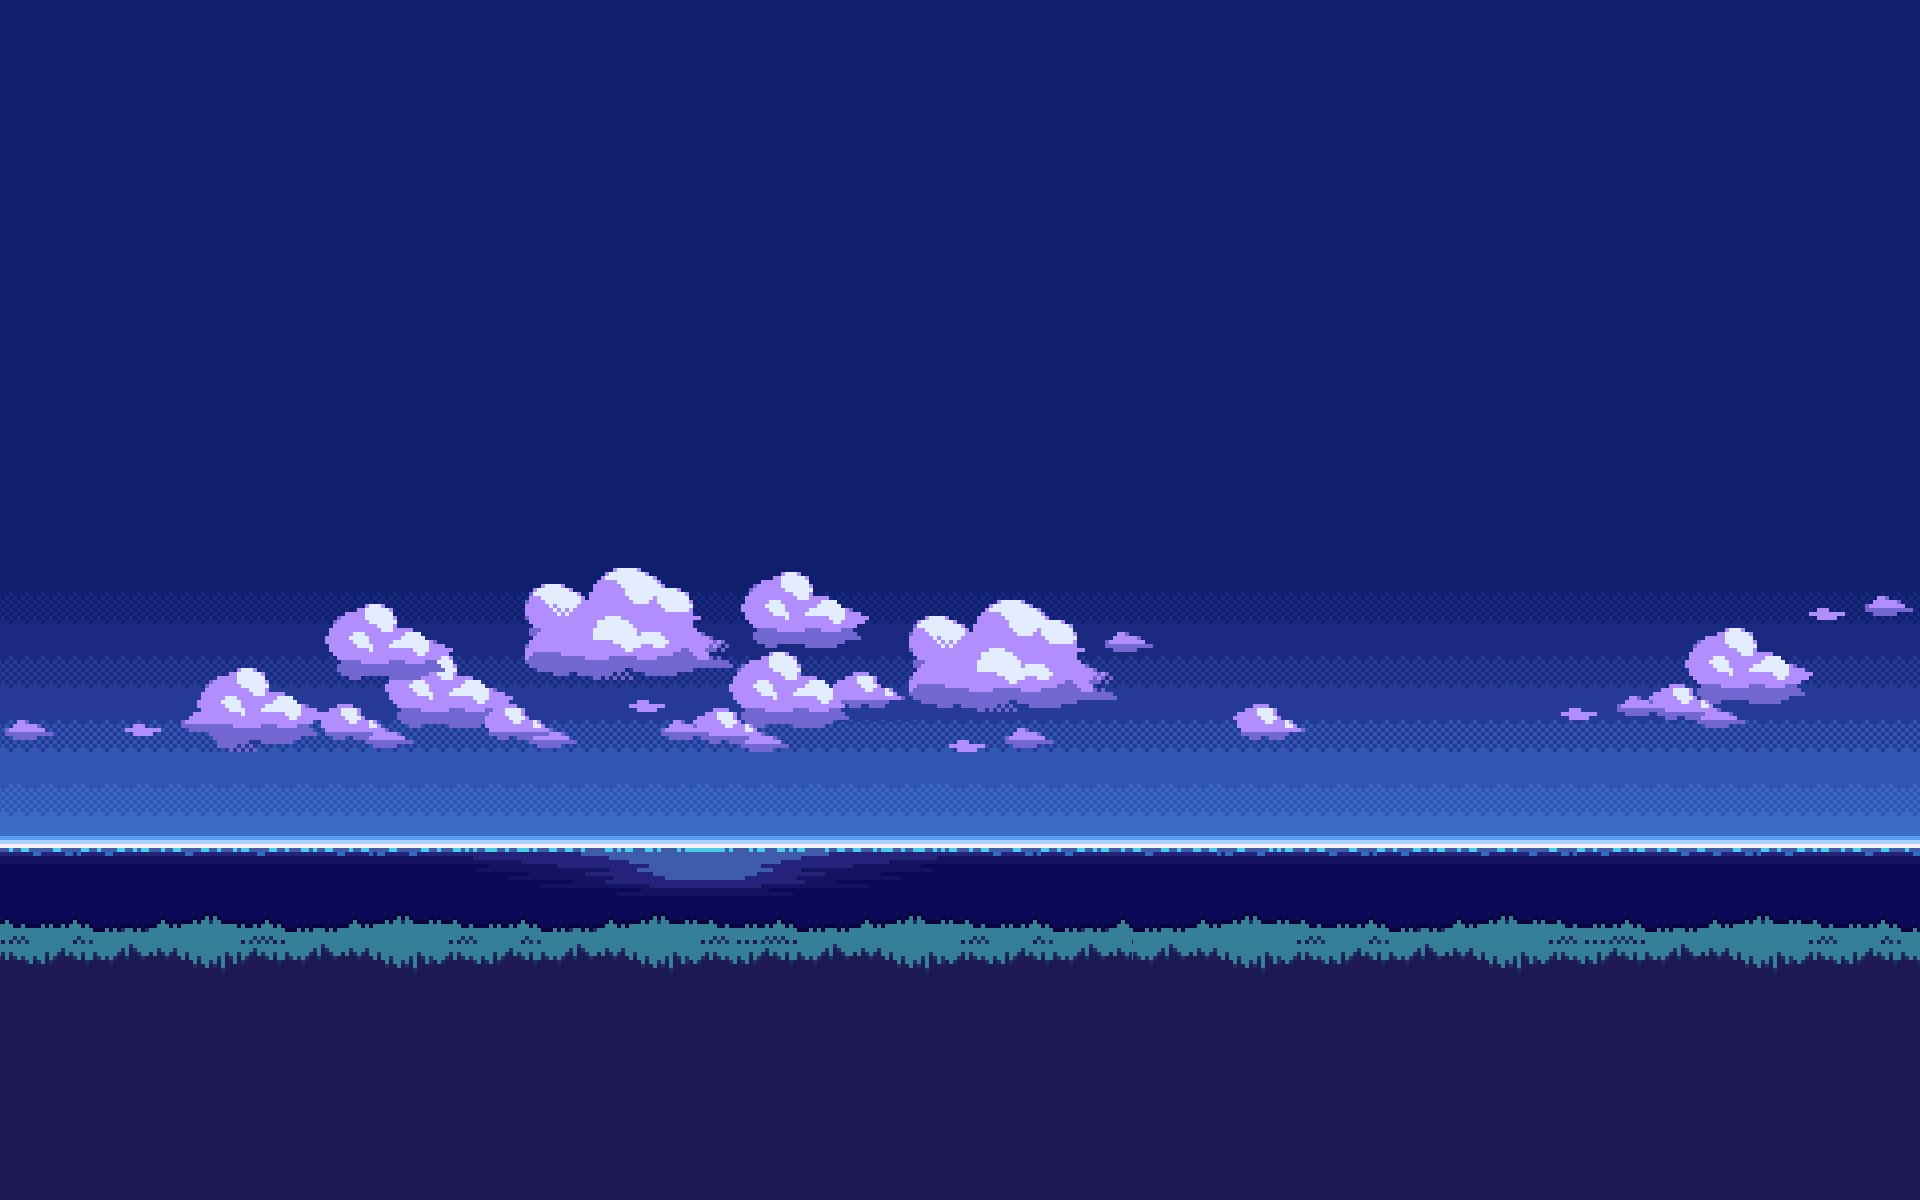 Wallpaper Cute For Mobile 8 Bit Wallpapers You Ll Totally Want For Your Android